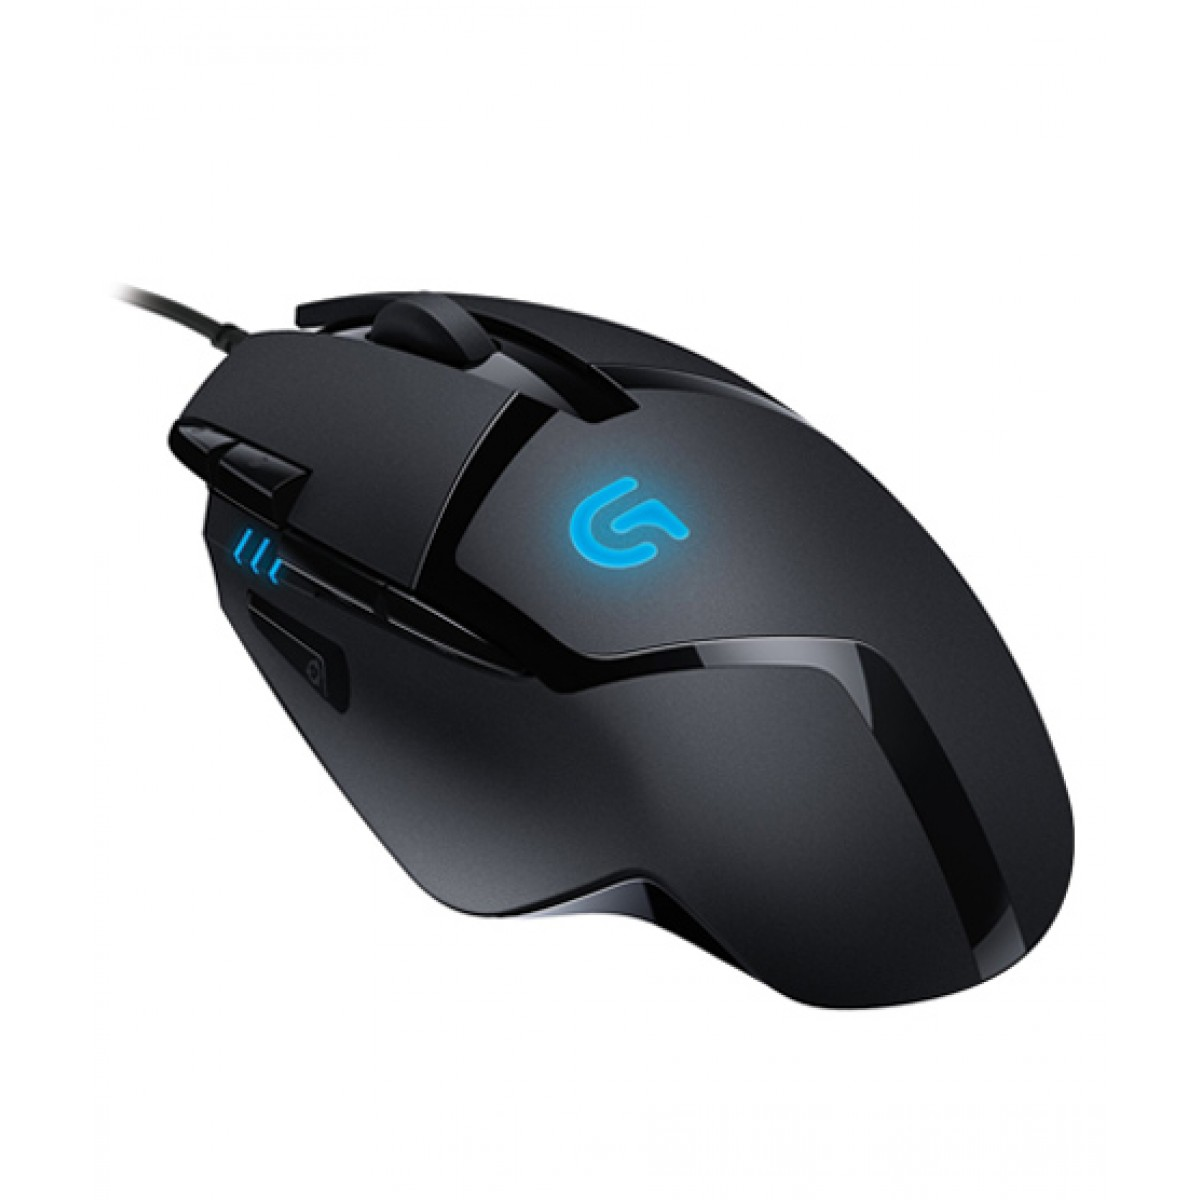 LOGITECH G402 MOUSE WINDOWS 8.1 DRIVERS DOWNLOAD